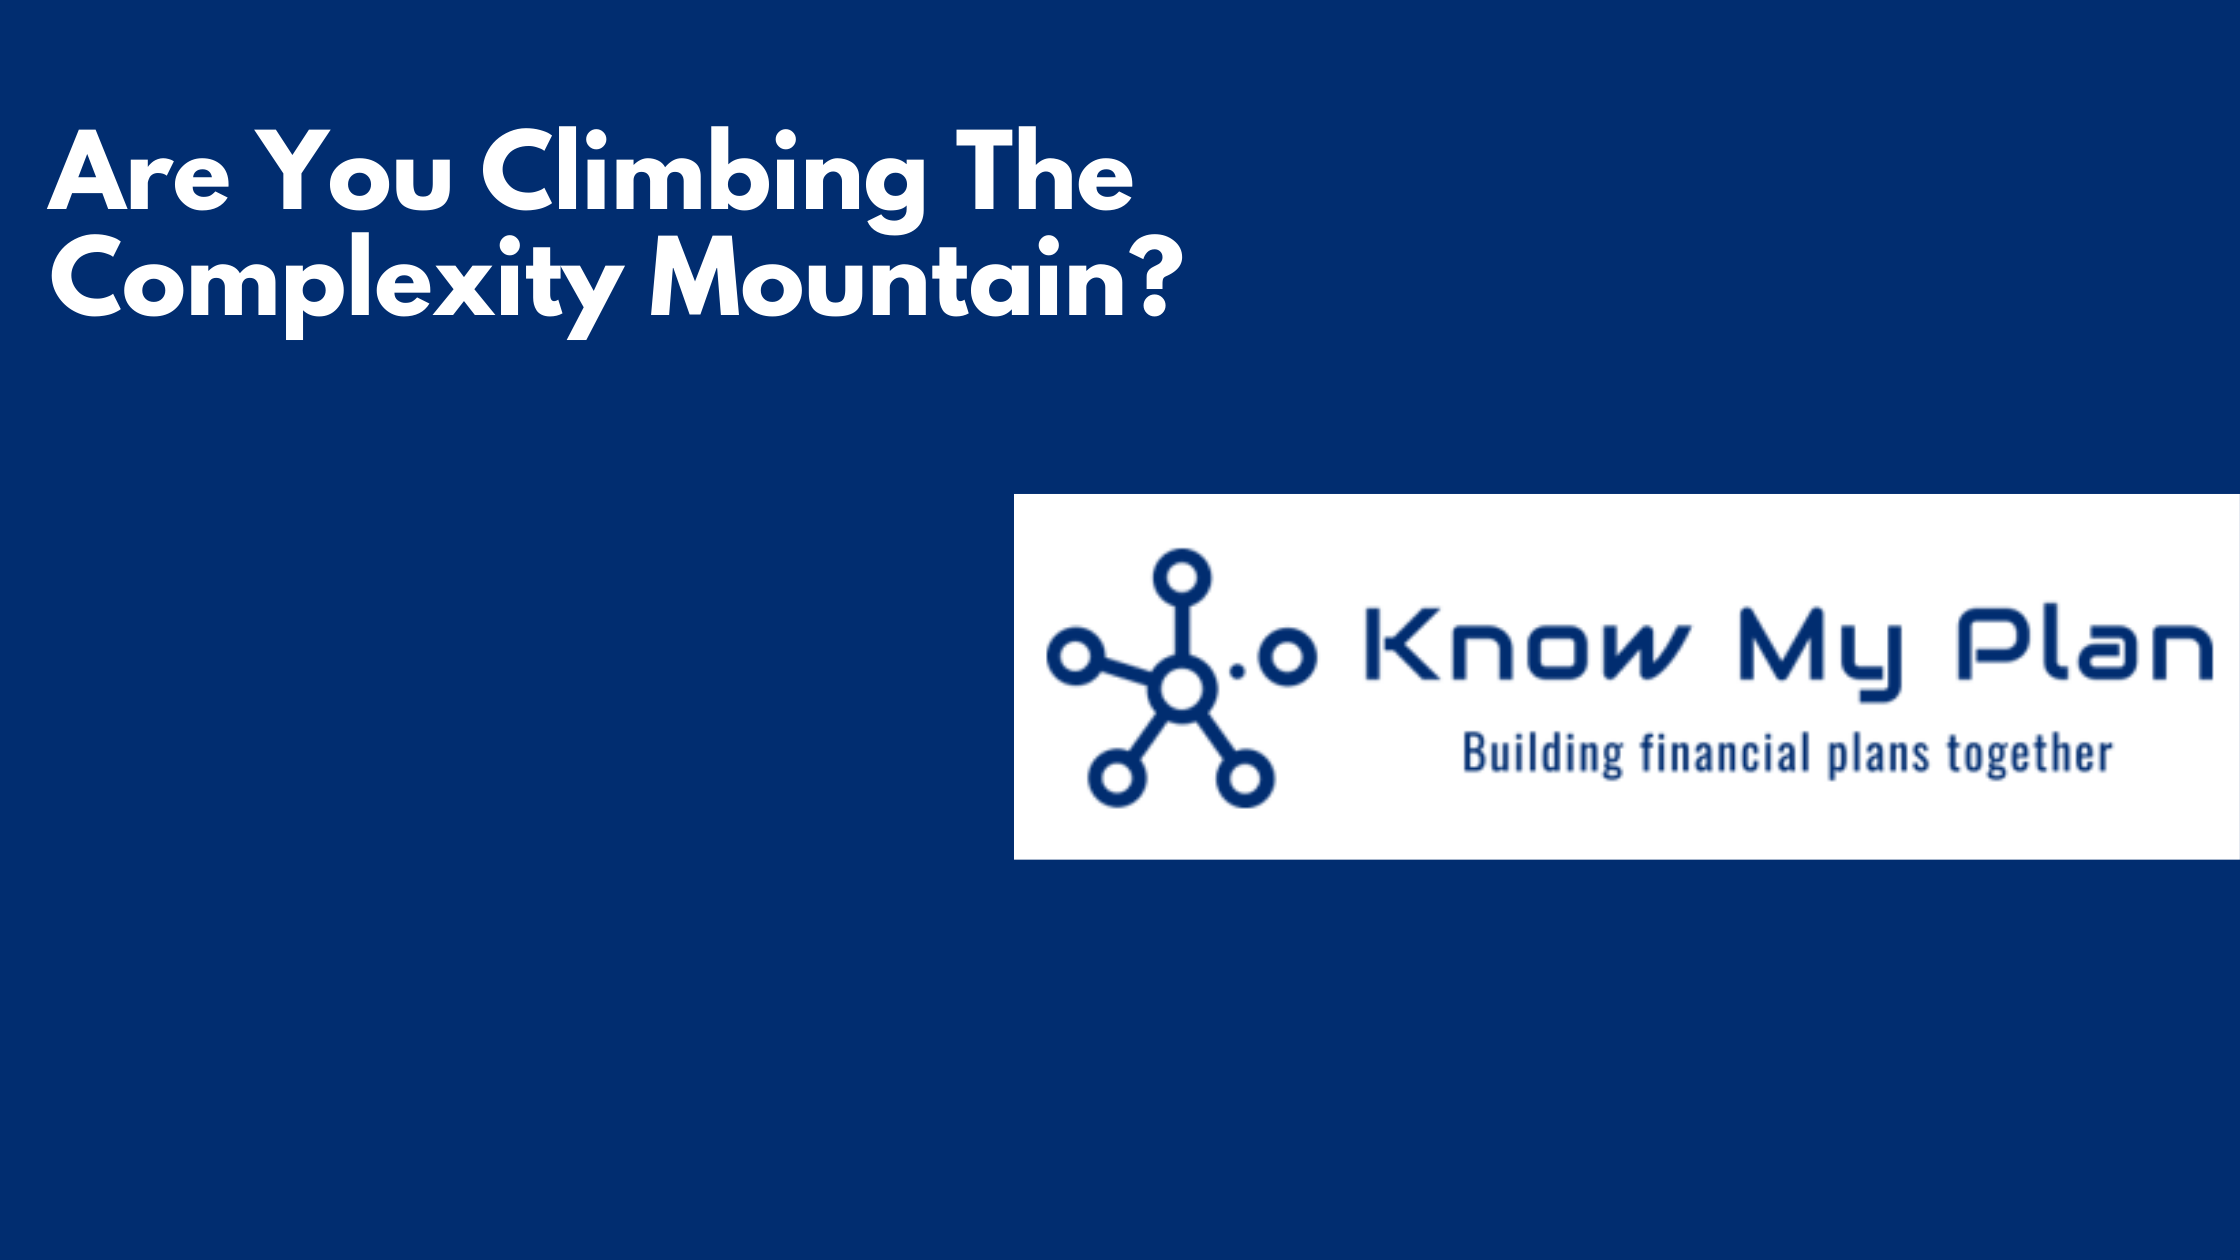 Are You Climbing The Complexity Mountain? Thumbnail